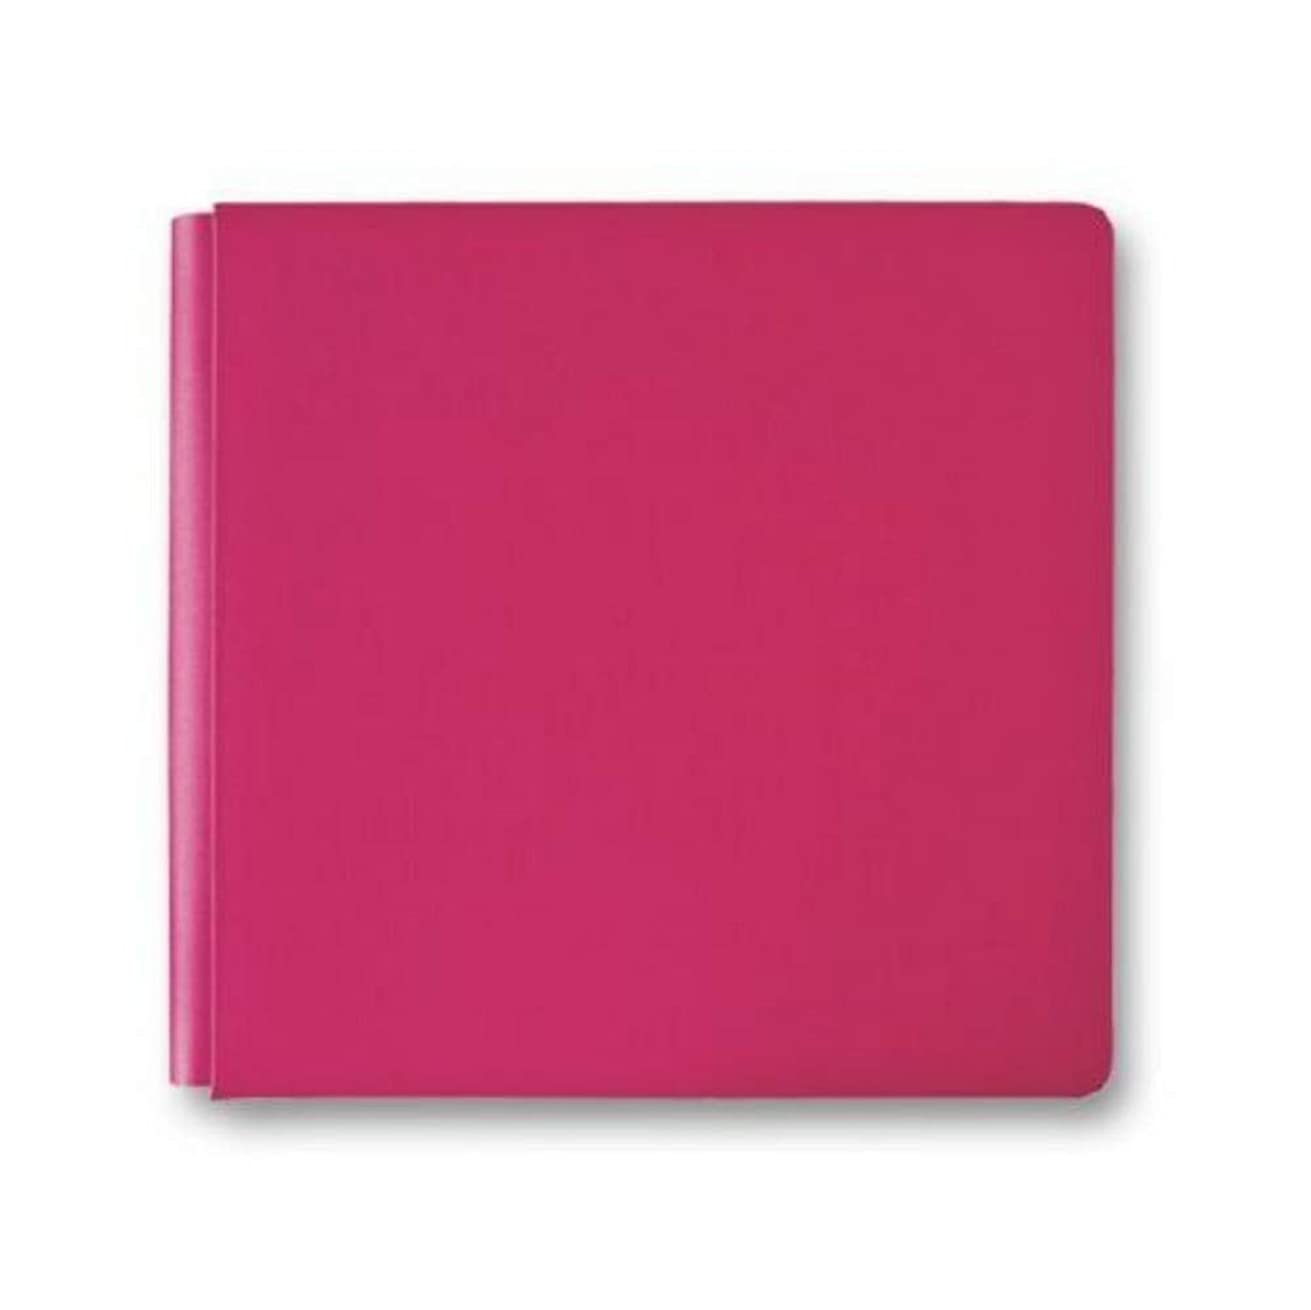 Fuchsia Pink 12x12 Album Cover Only by Creative Memories